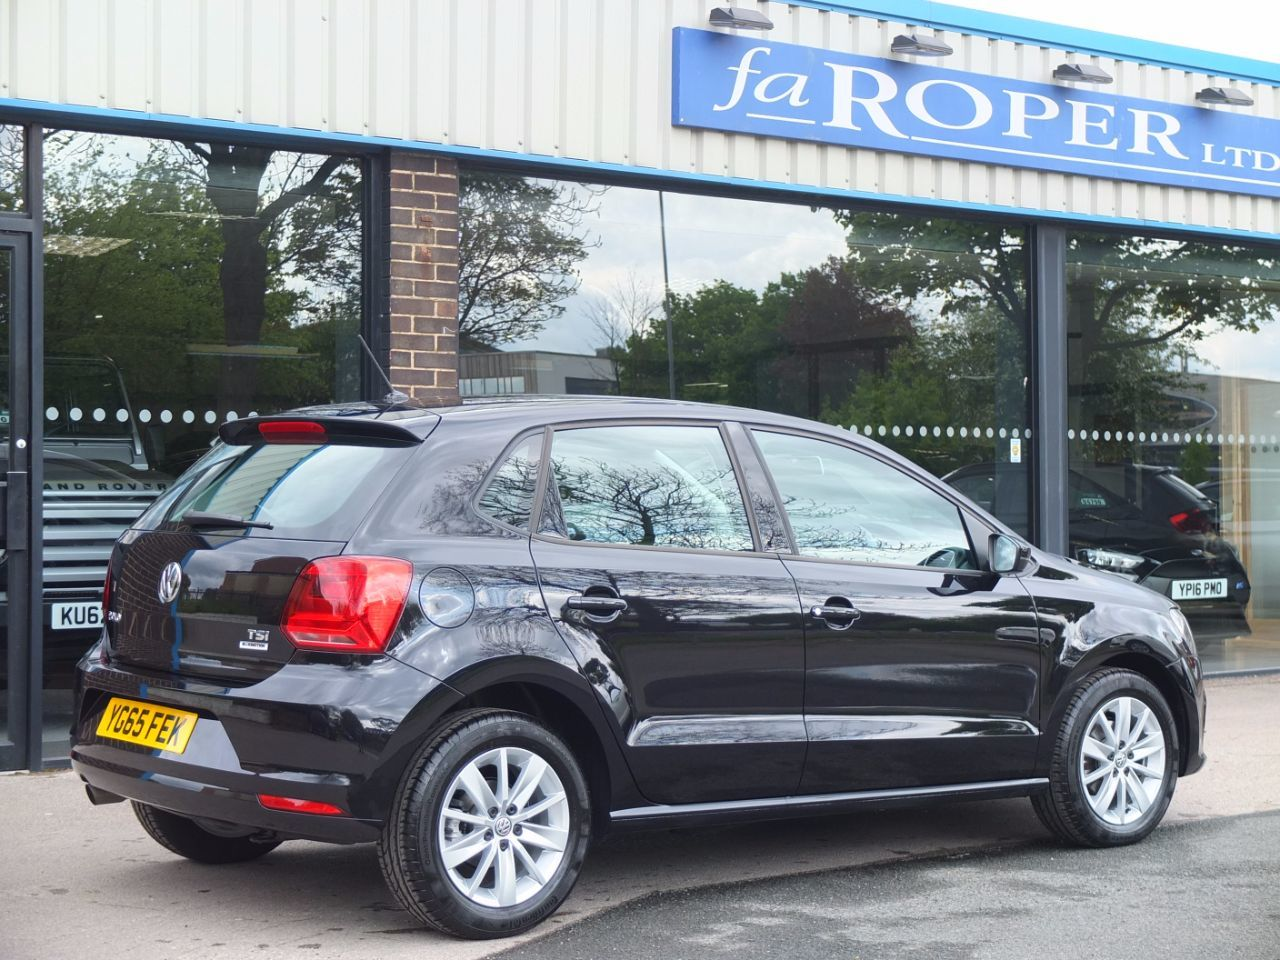 Volkswagen Polo 1.2 TSI Bluemotion Tech SE 5 door Hatchback Petrol Deep Black Metallic